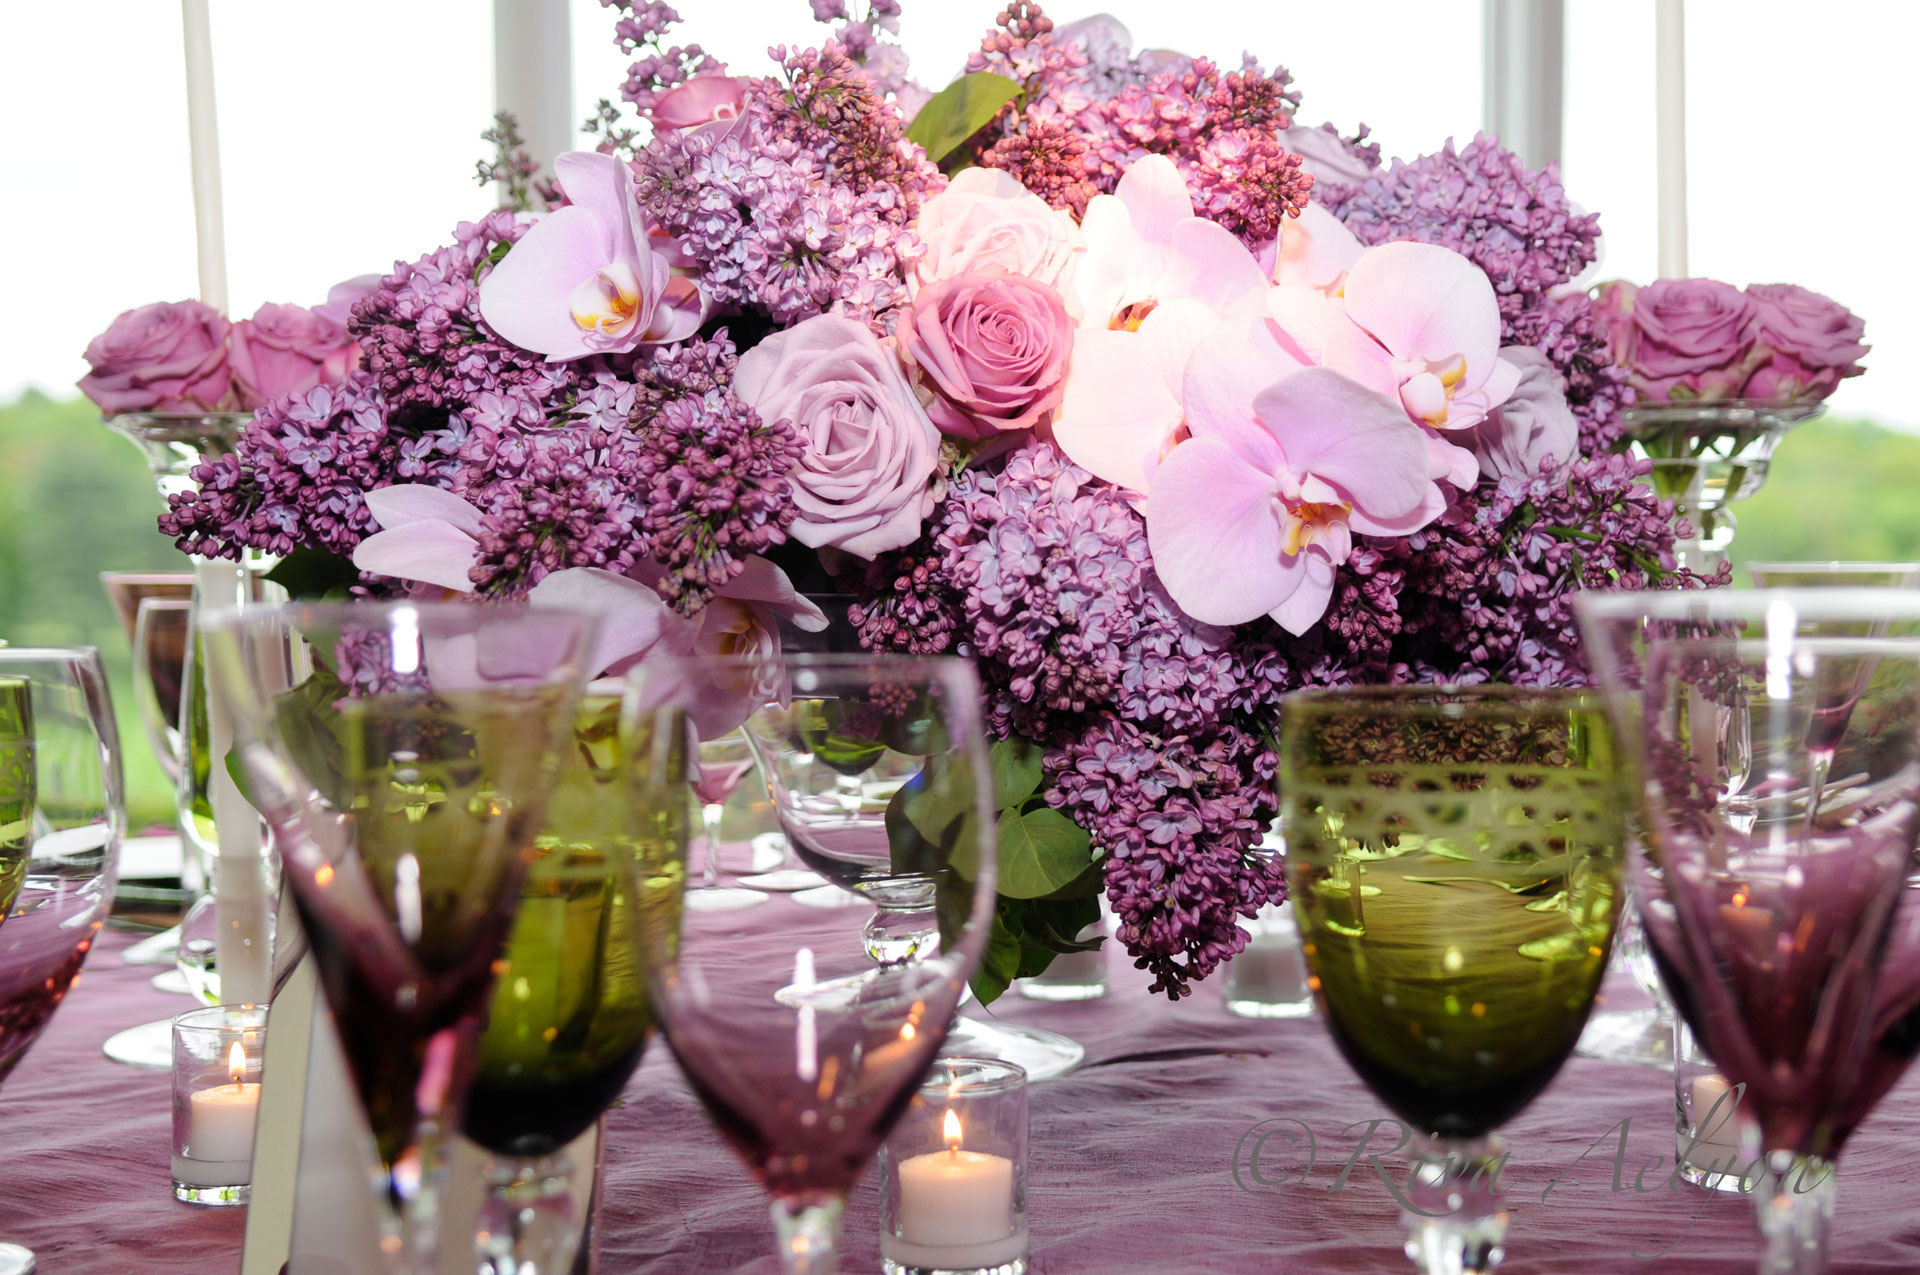 Elegant Effects in Floral Design - Table Centerpiece